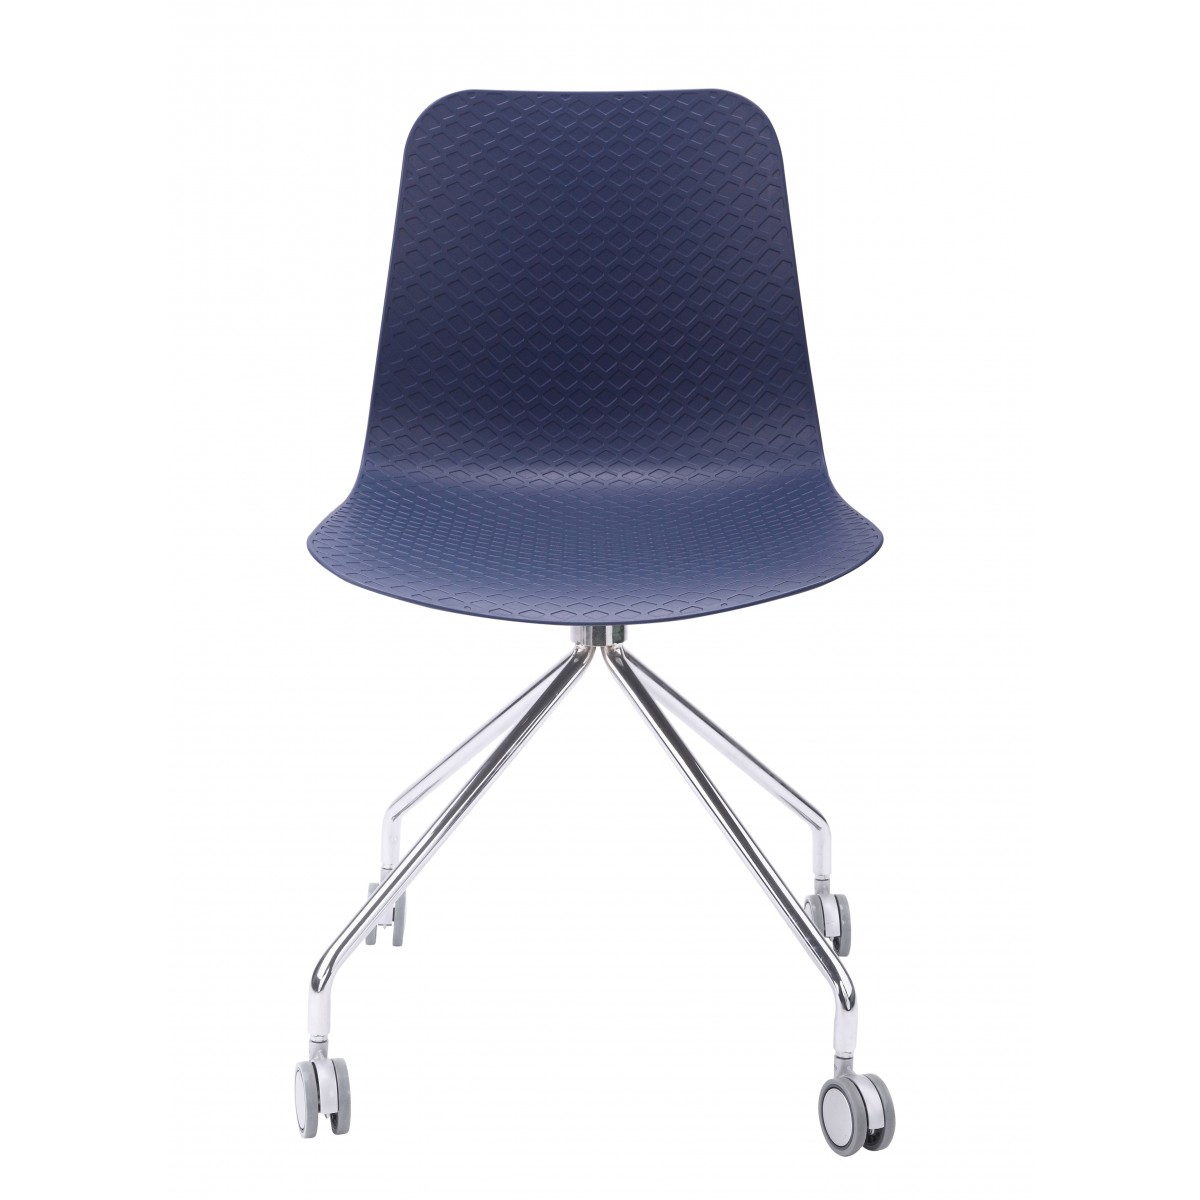 navy office chair folding table and chairs for camping hebe series molded plastic designer task